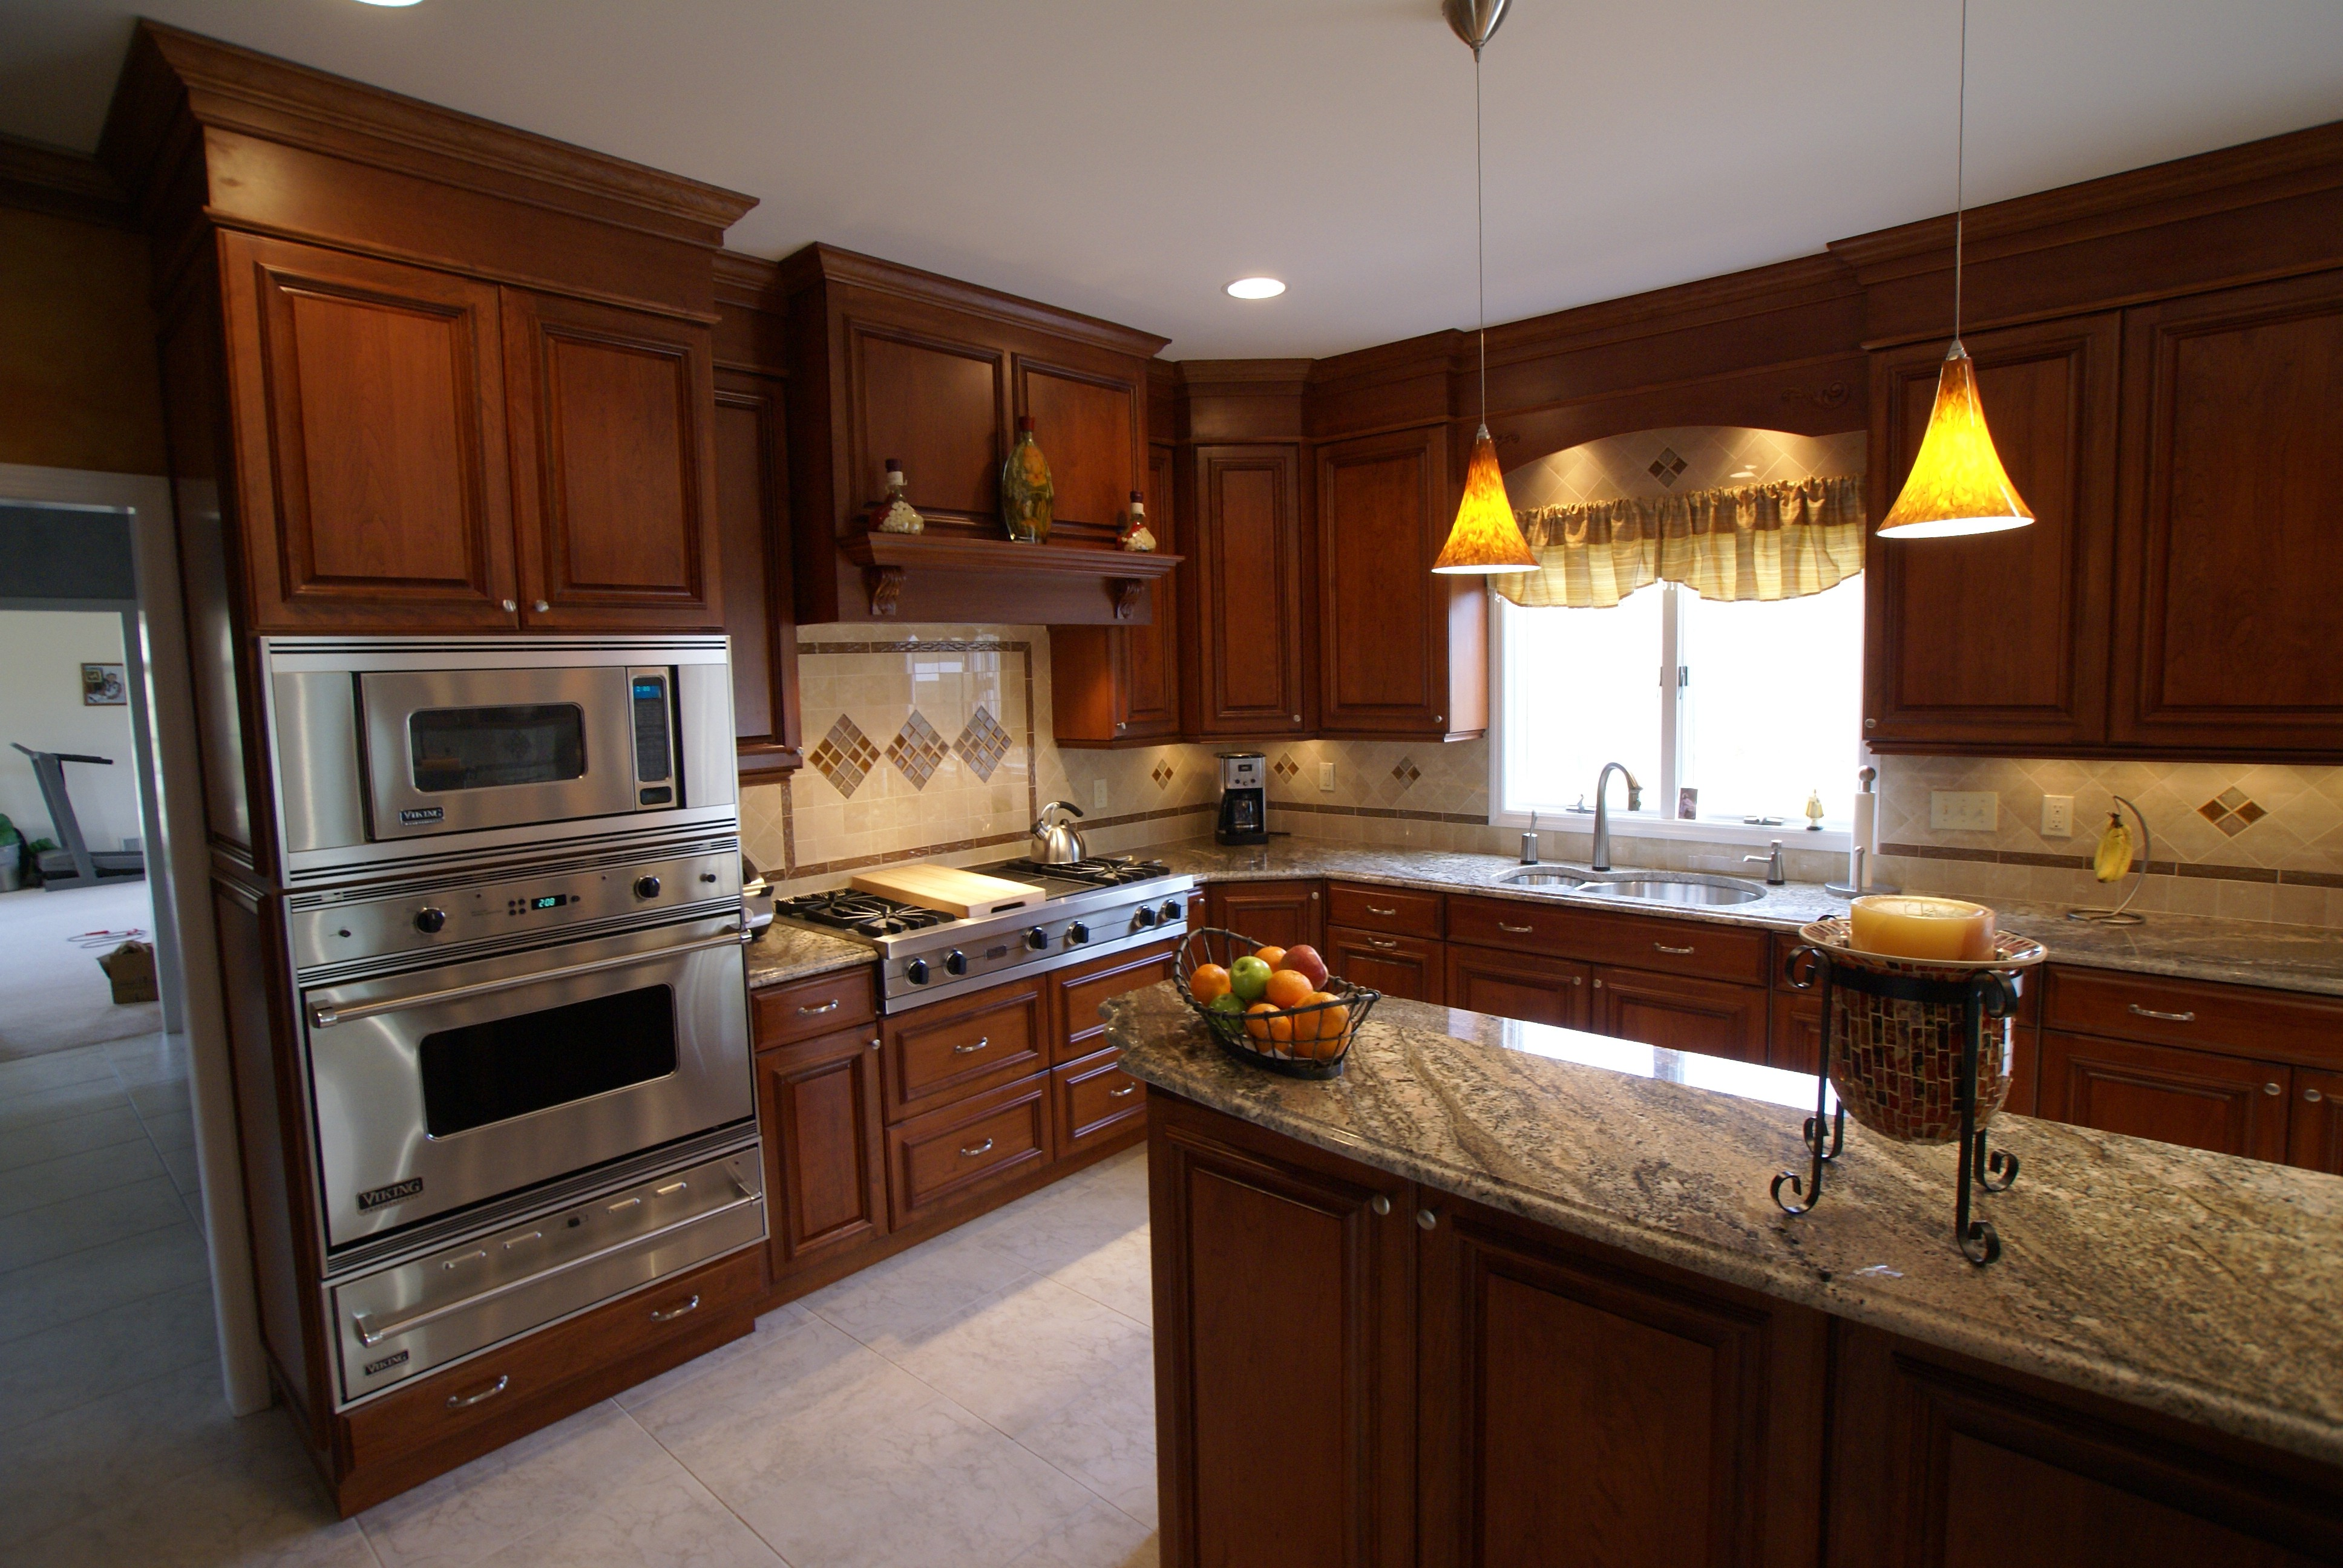 Monmouth county kitchen remodeling ideas to inspire you for Remodeling your kitchen